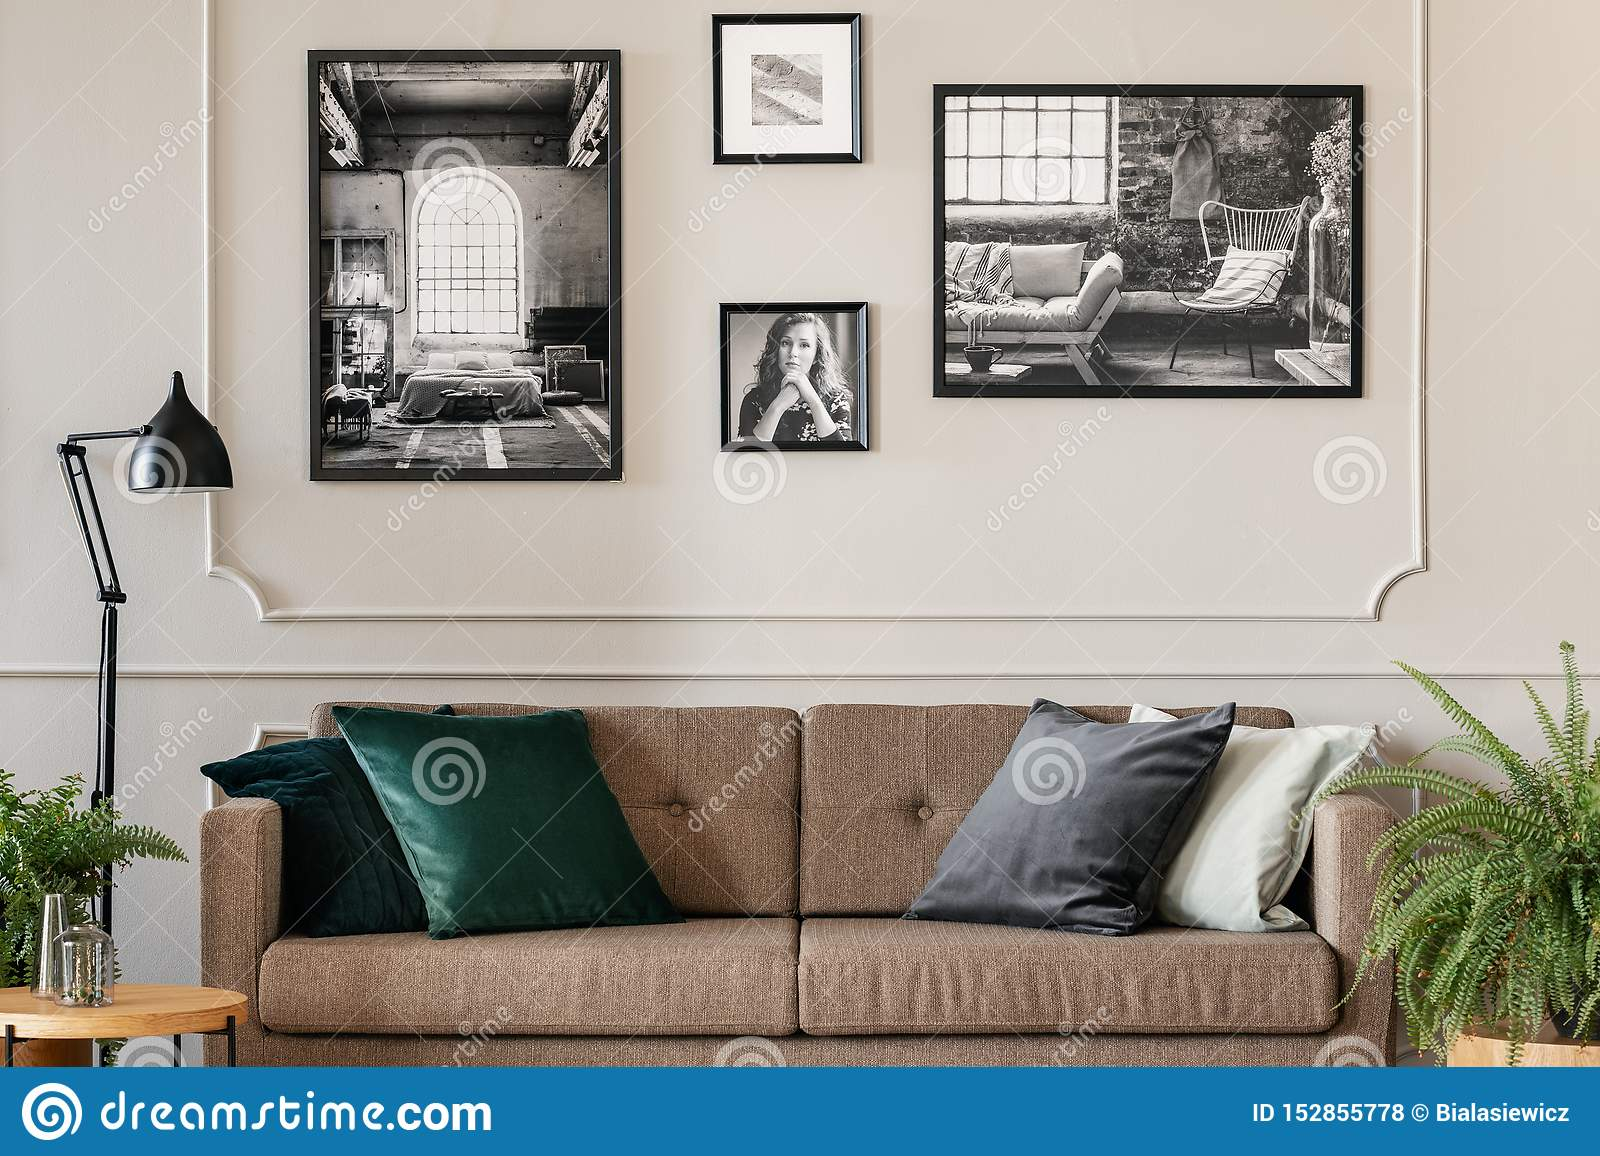 Real photo of a cozy living room interior with cushions on a brown, retro sofa and photos on white wall